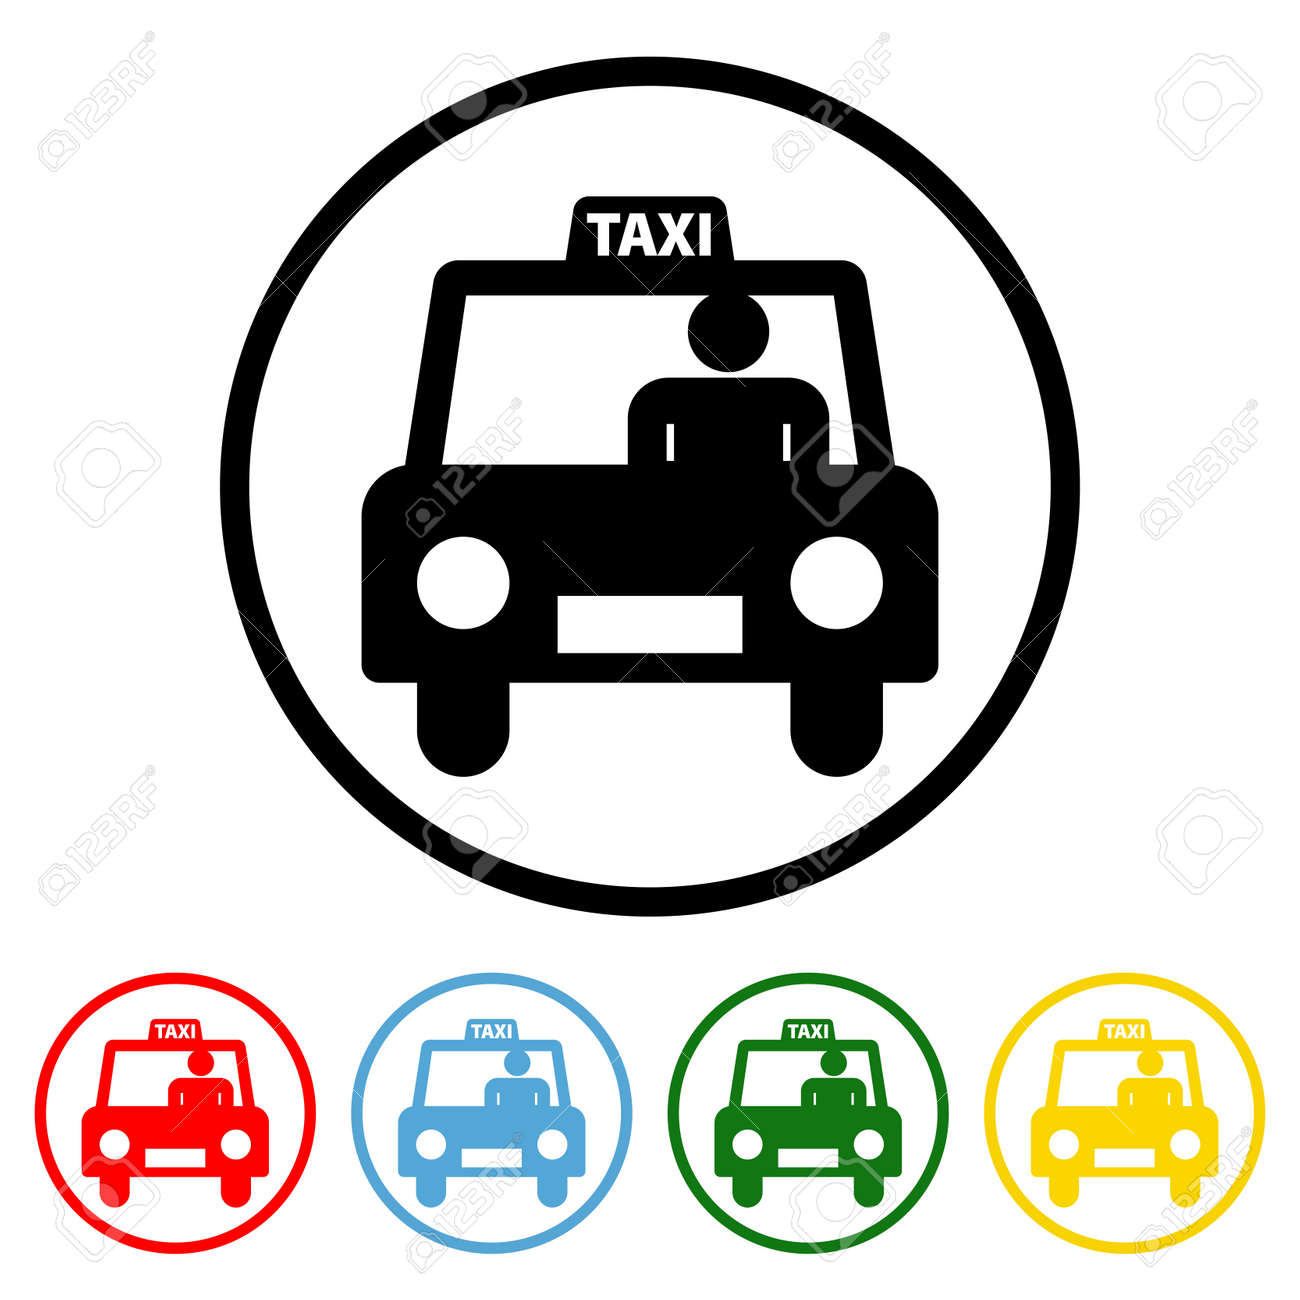 Taxi icon vector illustration design element with four color variations. Vector illustration. All in a single layer. Elements for design. Taxi Icon flat design. - 172254389